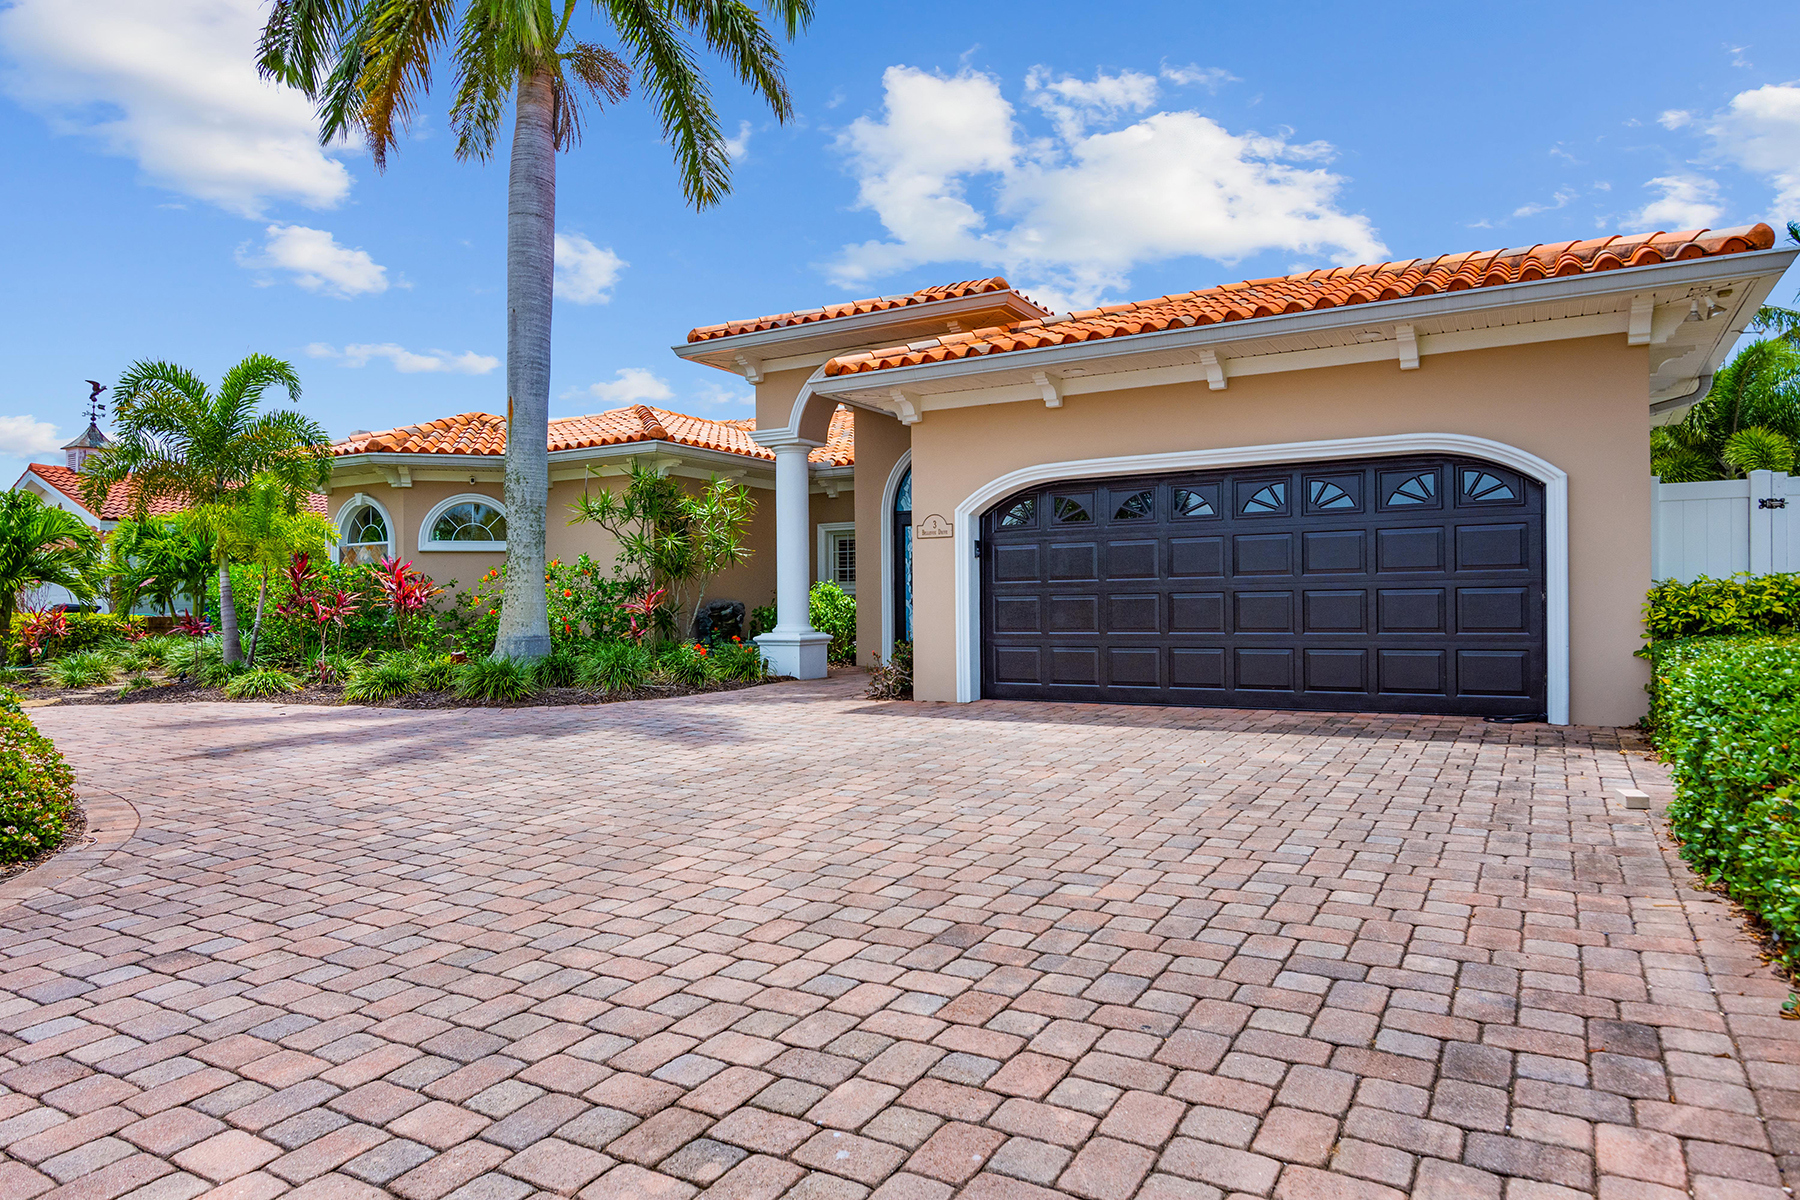 Single Family Homes for Sale at 3 Bellevue Dr Treasure Island, Florida 33706 United States